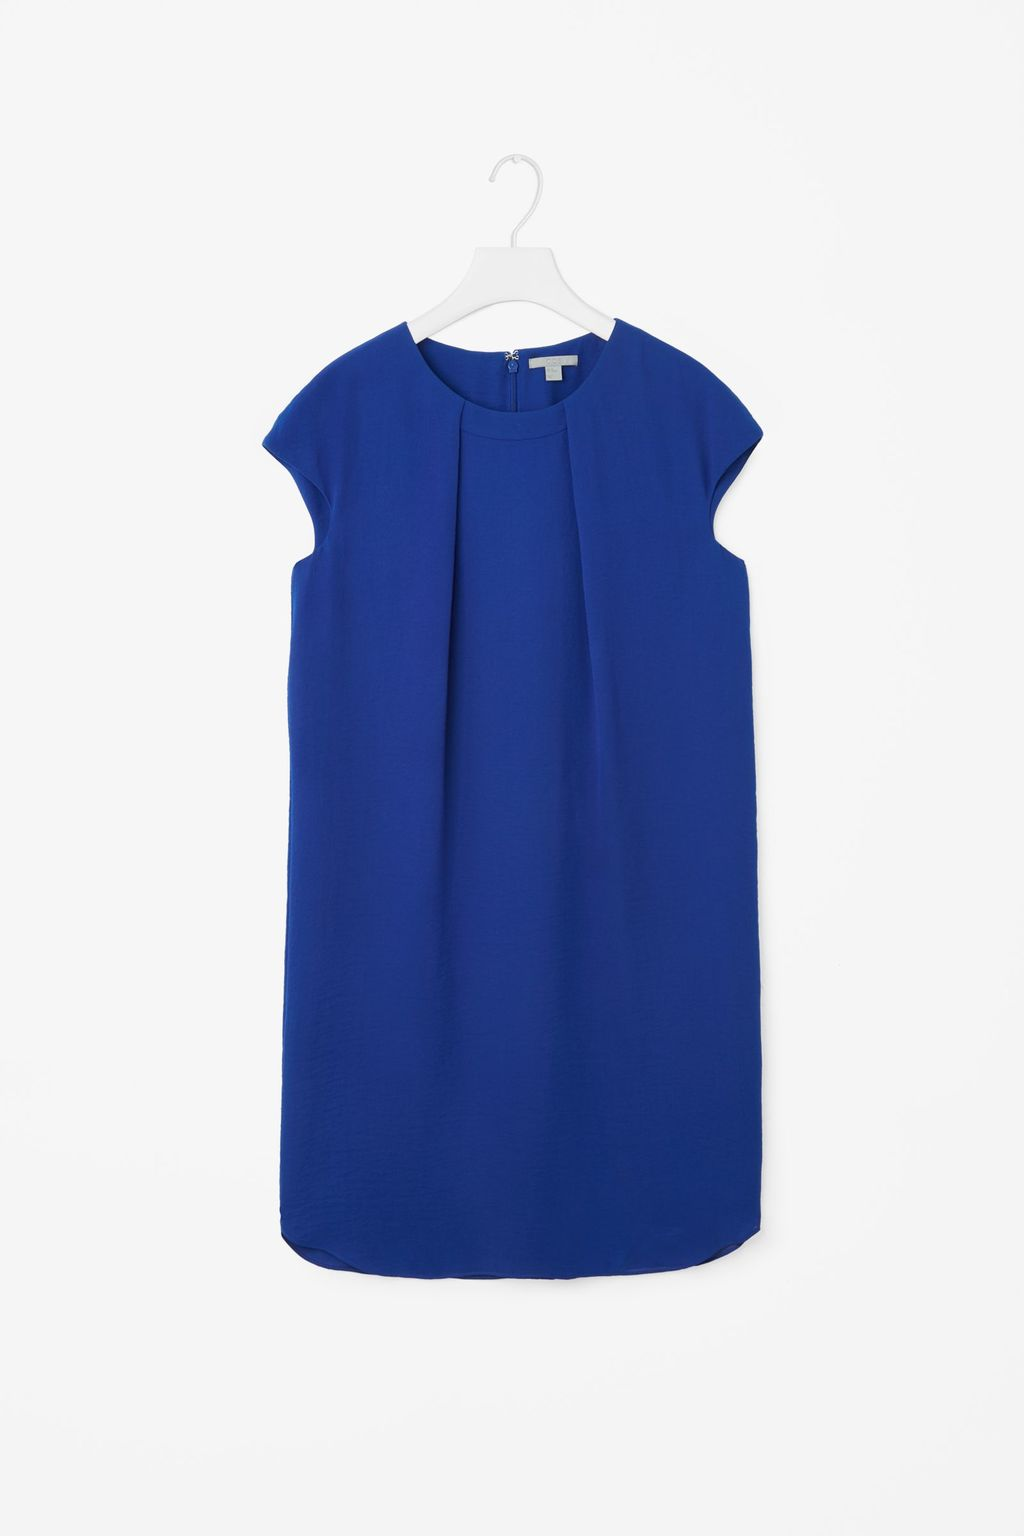 Soft Pleat A Line Dress - style: shift; sleeve style: capped; pattern: plain; predominant colour: royal blue; length: just above the knee; fit: body skimming; fibres: polyester/polyamide - 100%; neckline: crew; sleeve length: short sleeve; pattern type: fabric; texture group: other - light to midweight; occasions: creative work; season: s/s 2016; wardrobe: highlight